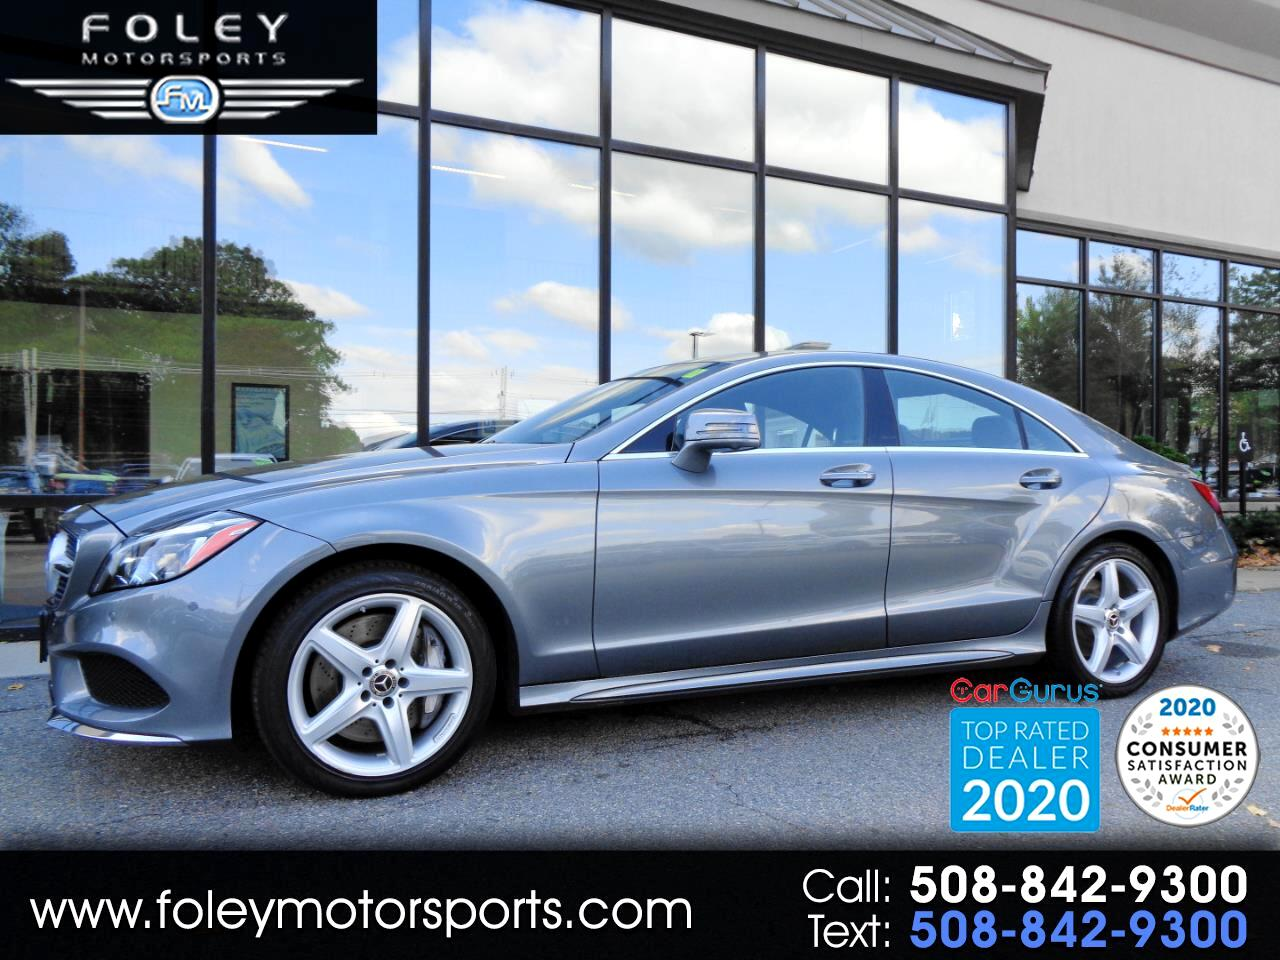 Mercedes-Benz CLS CLS 550 4MATIC Coupe 2018